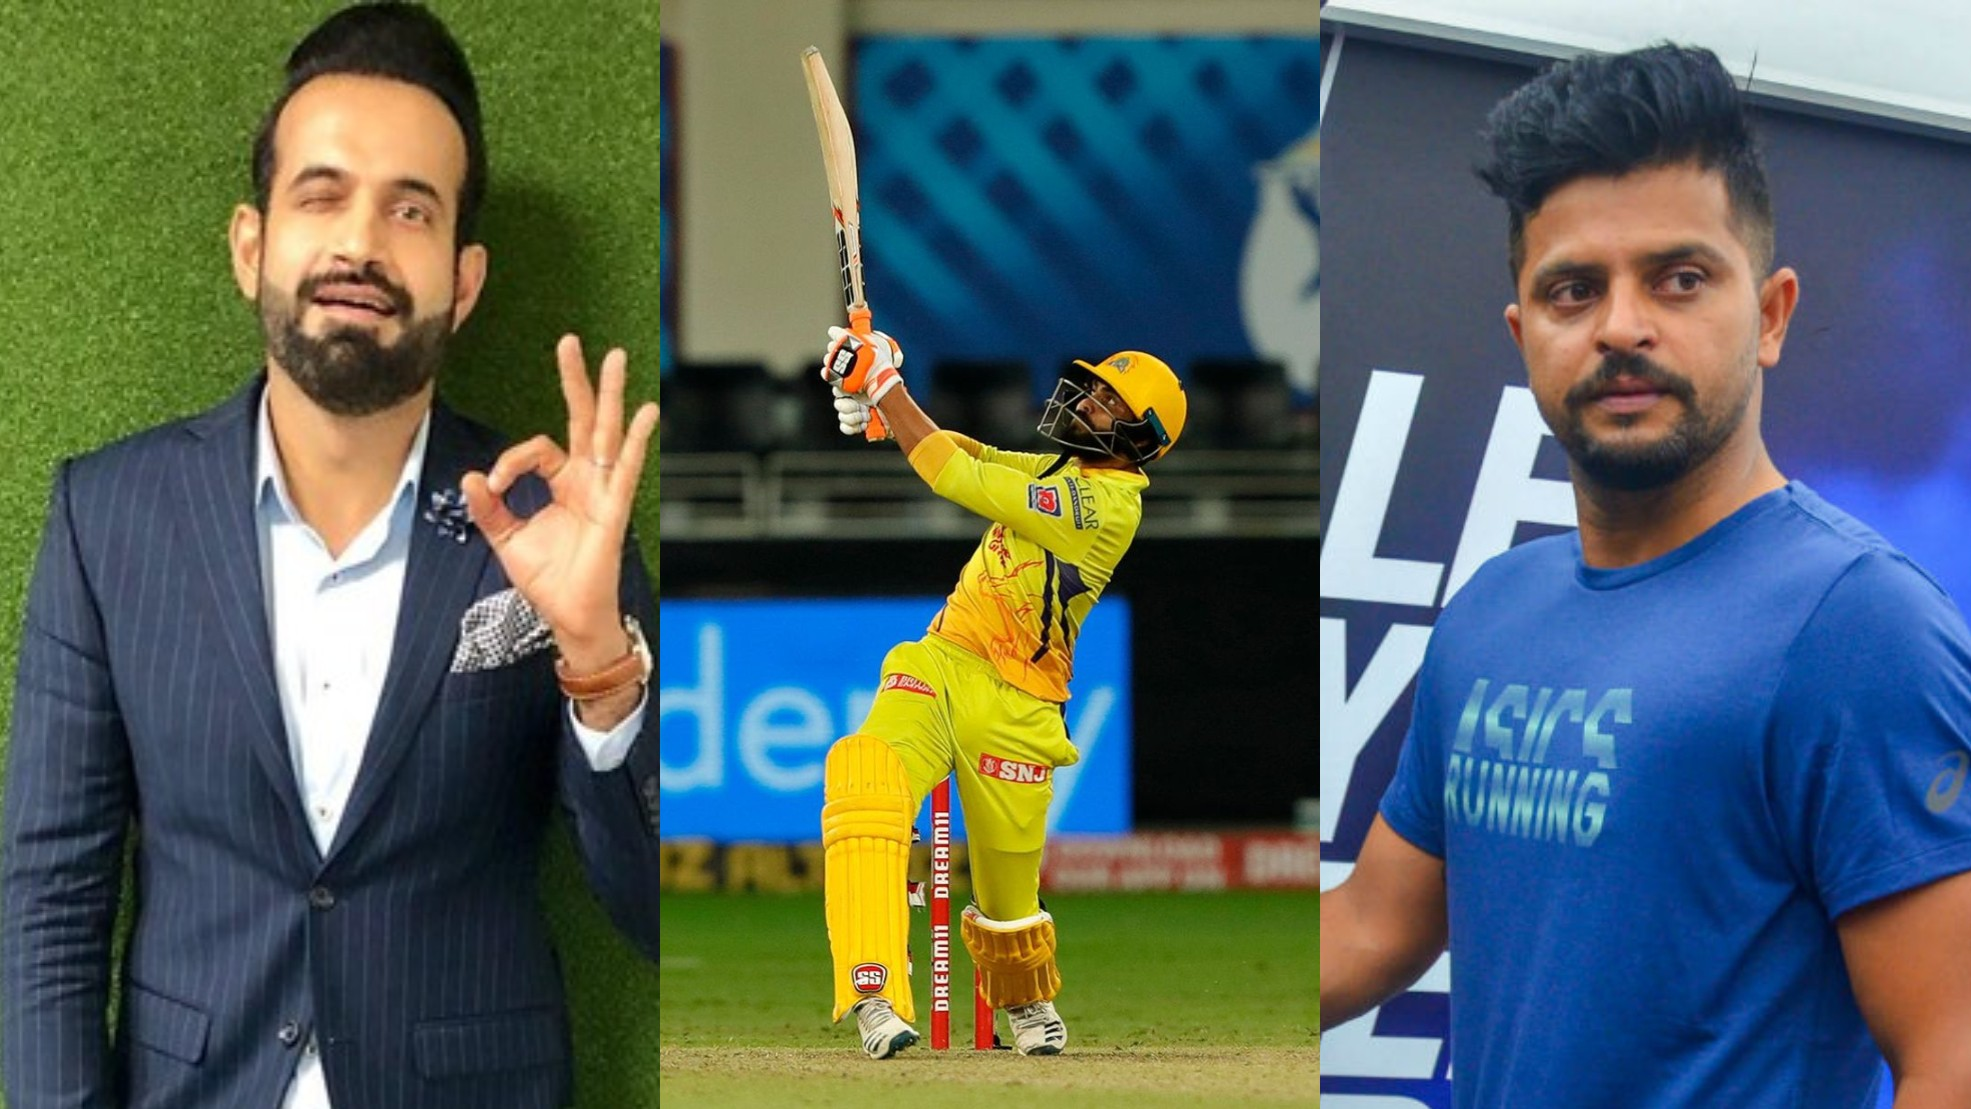 IPL 2020: Cricket fraternity reacts as Jadeja's batting fireworks help CSK beat KKR by 6 wickets